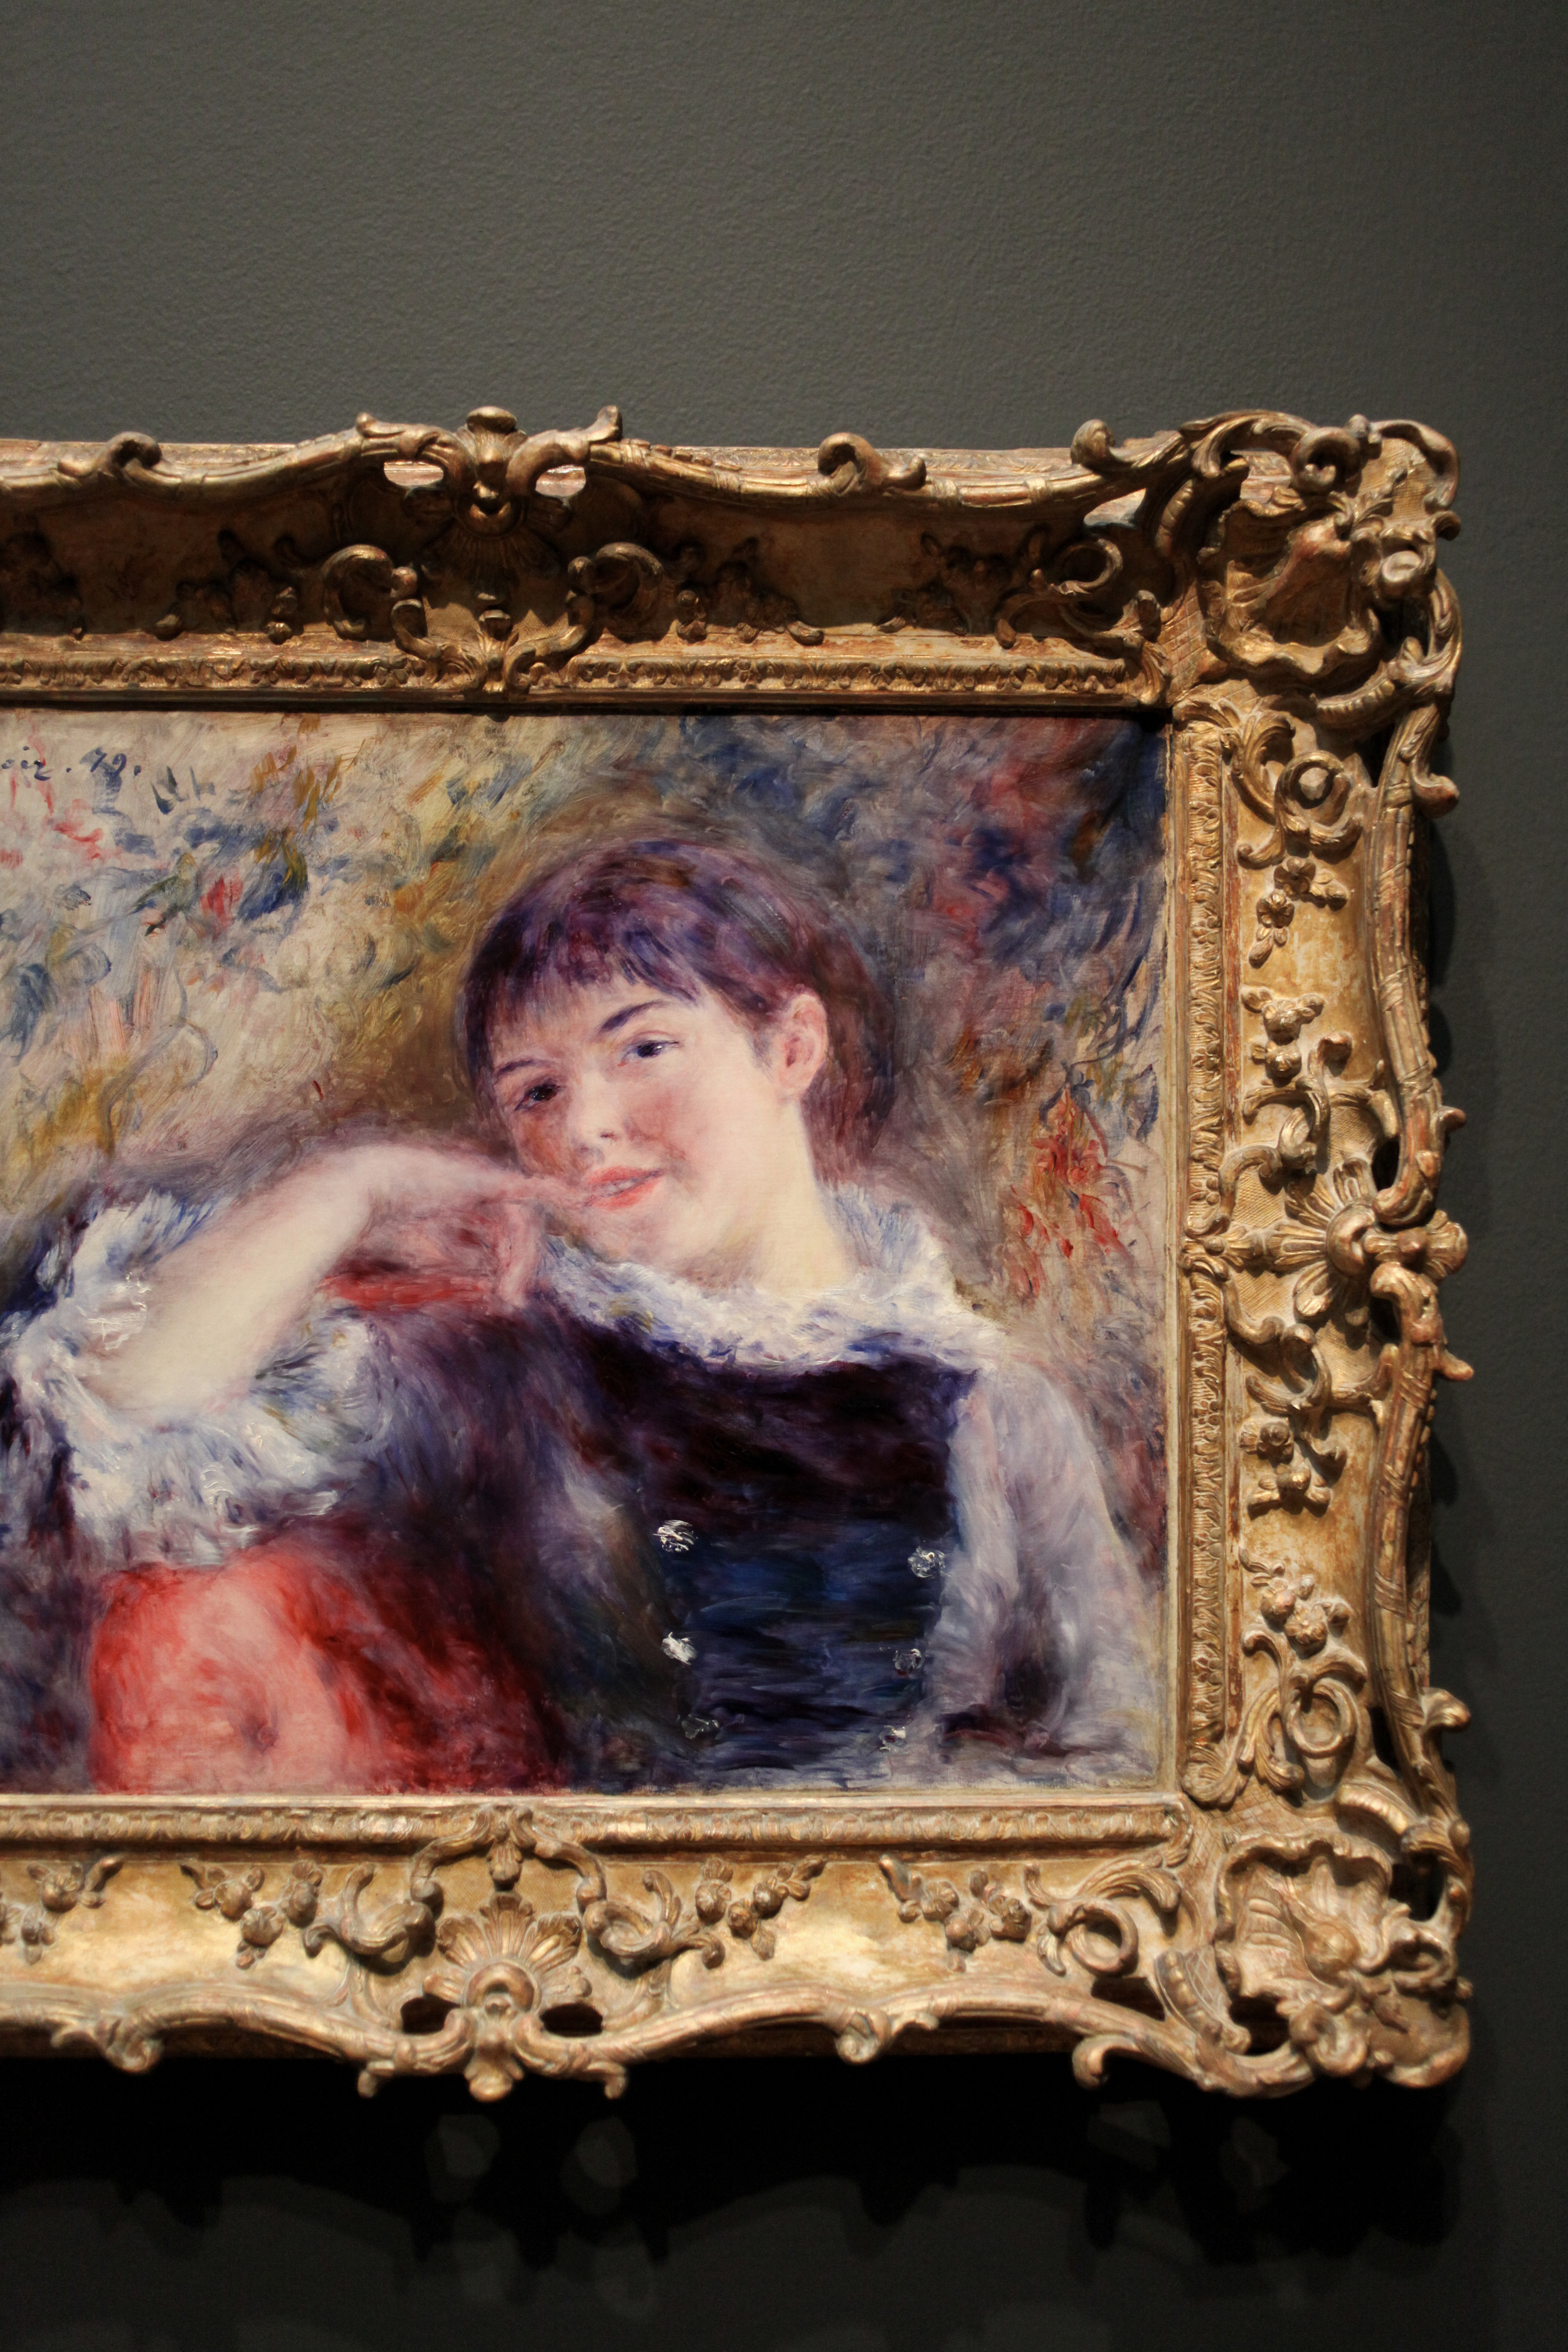 Pierre-Auguste Renoir - The Dreamer - oil on canvas